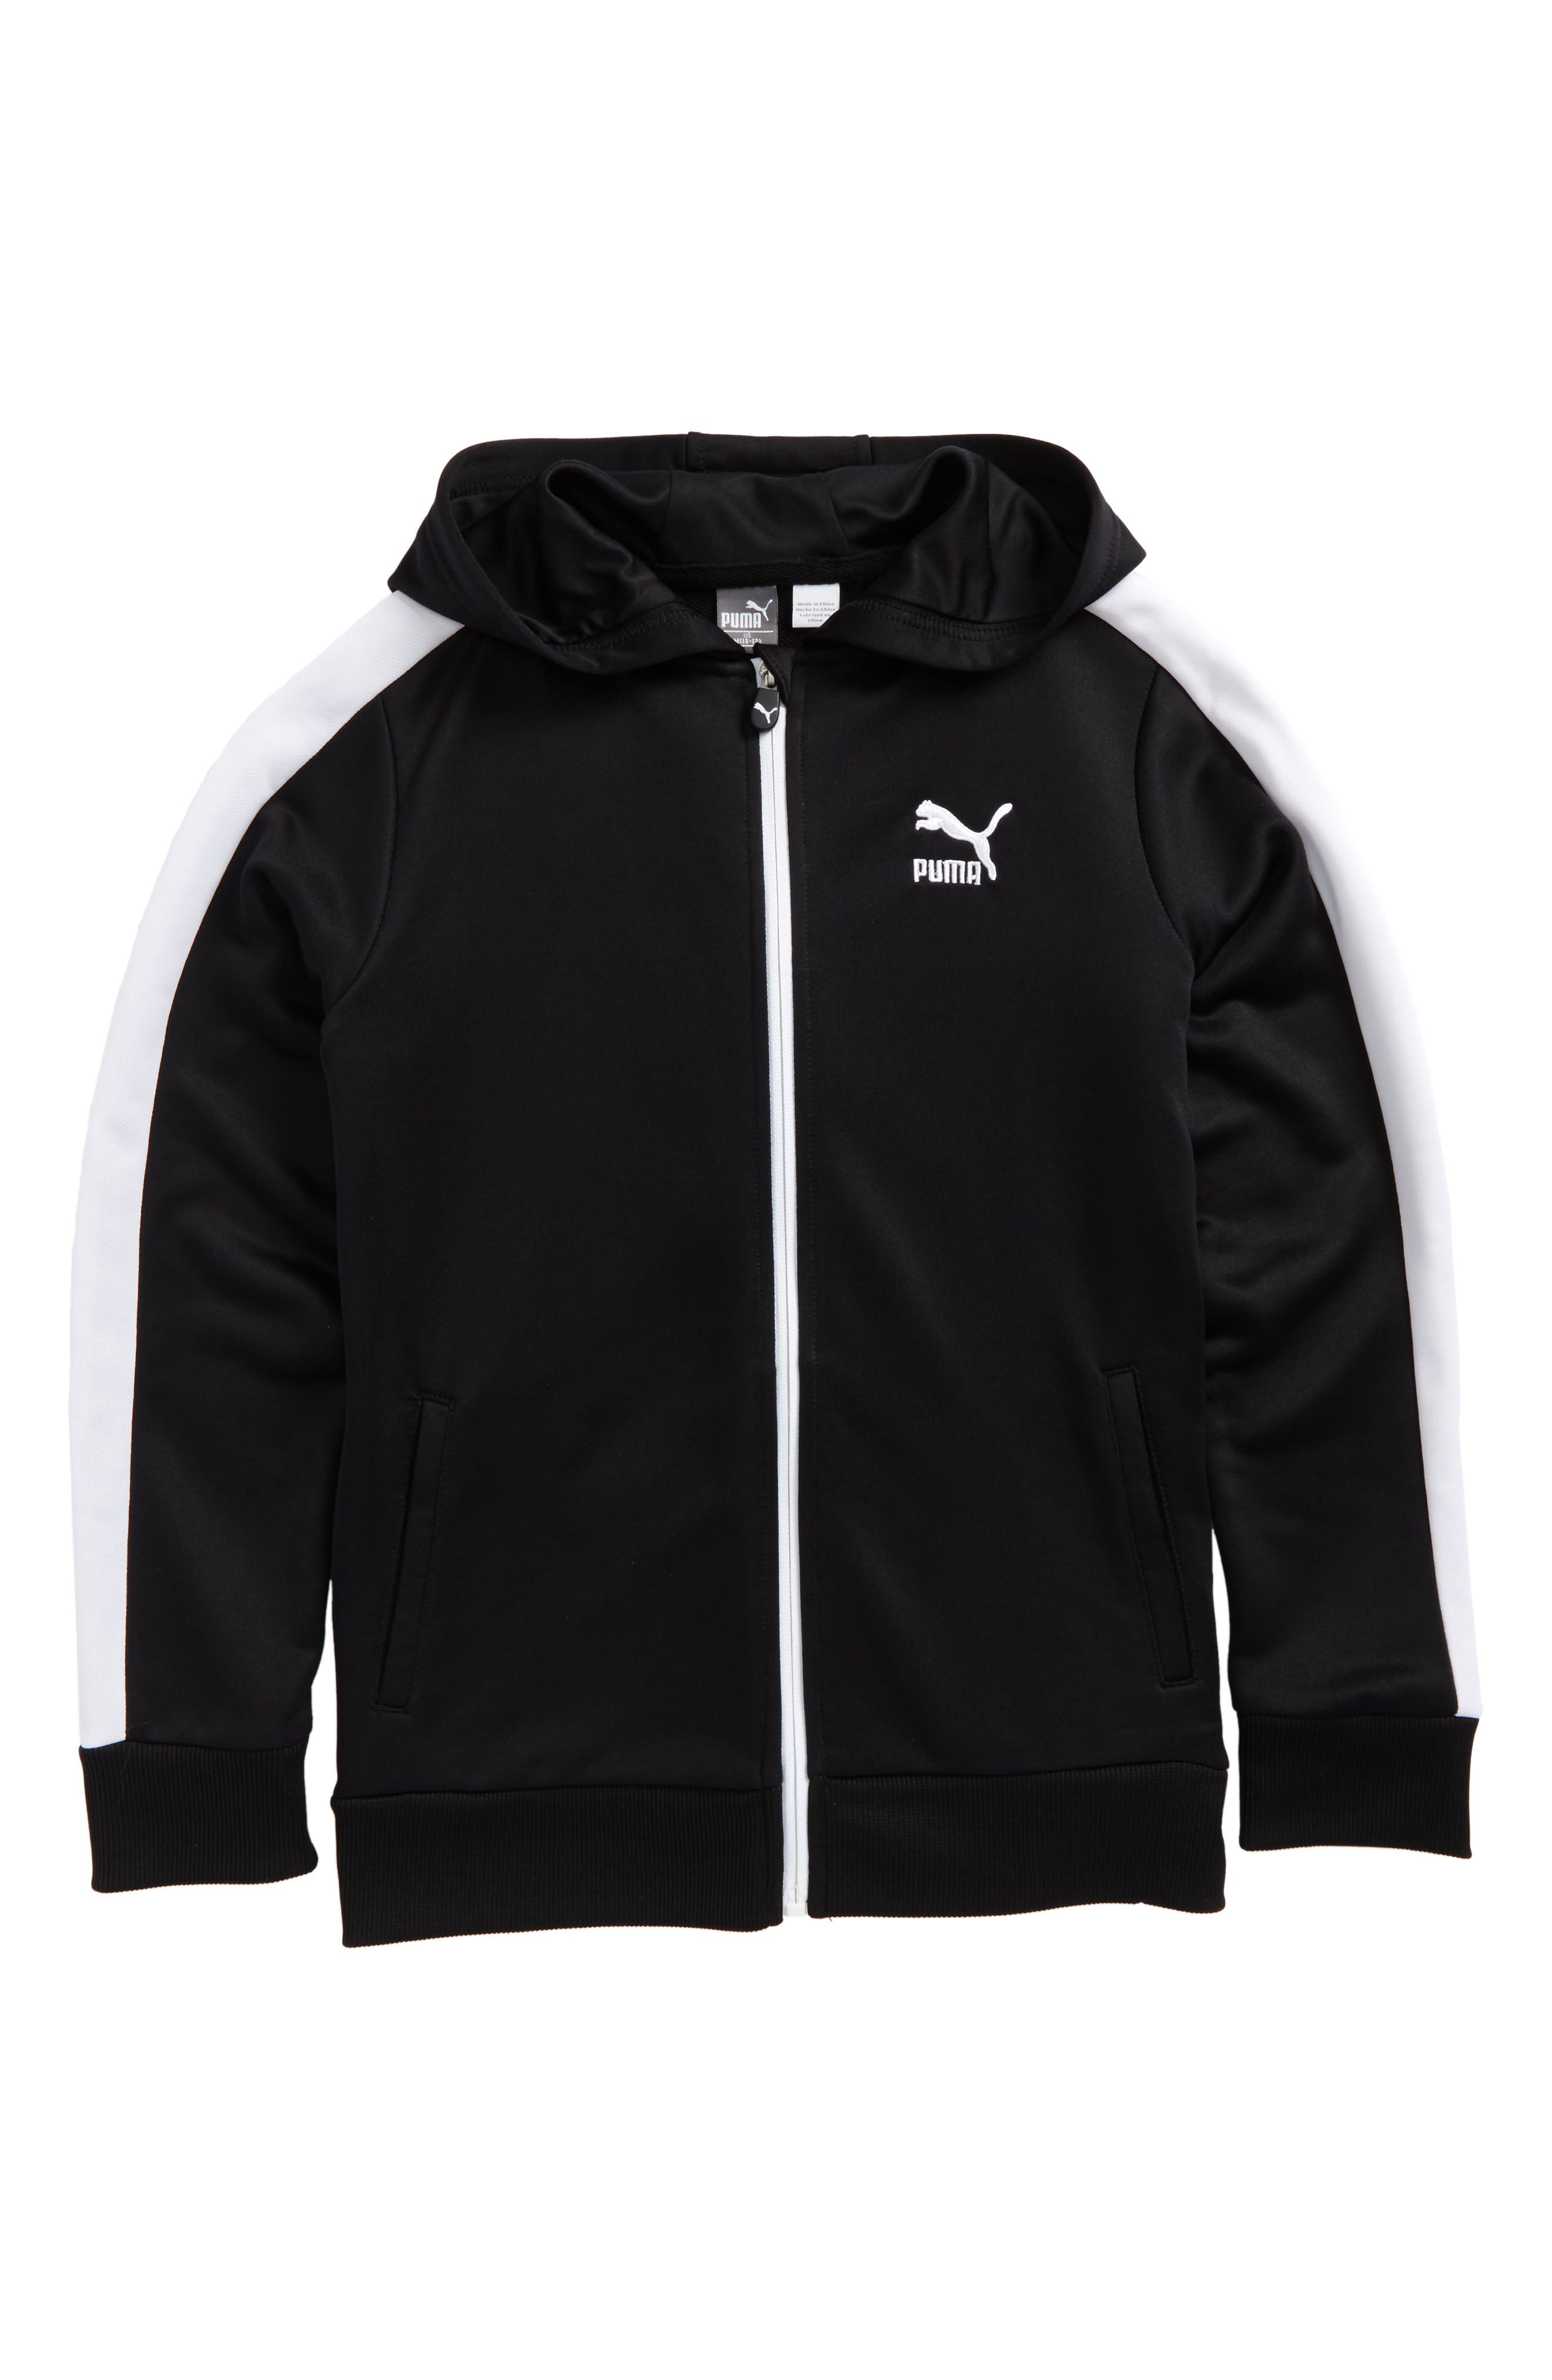 T7 Zip Hoodie,                         Main,                         color, Puma Black